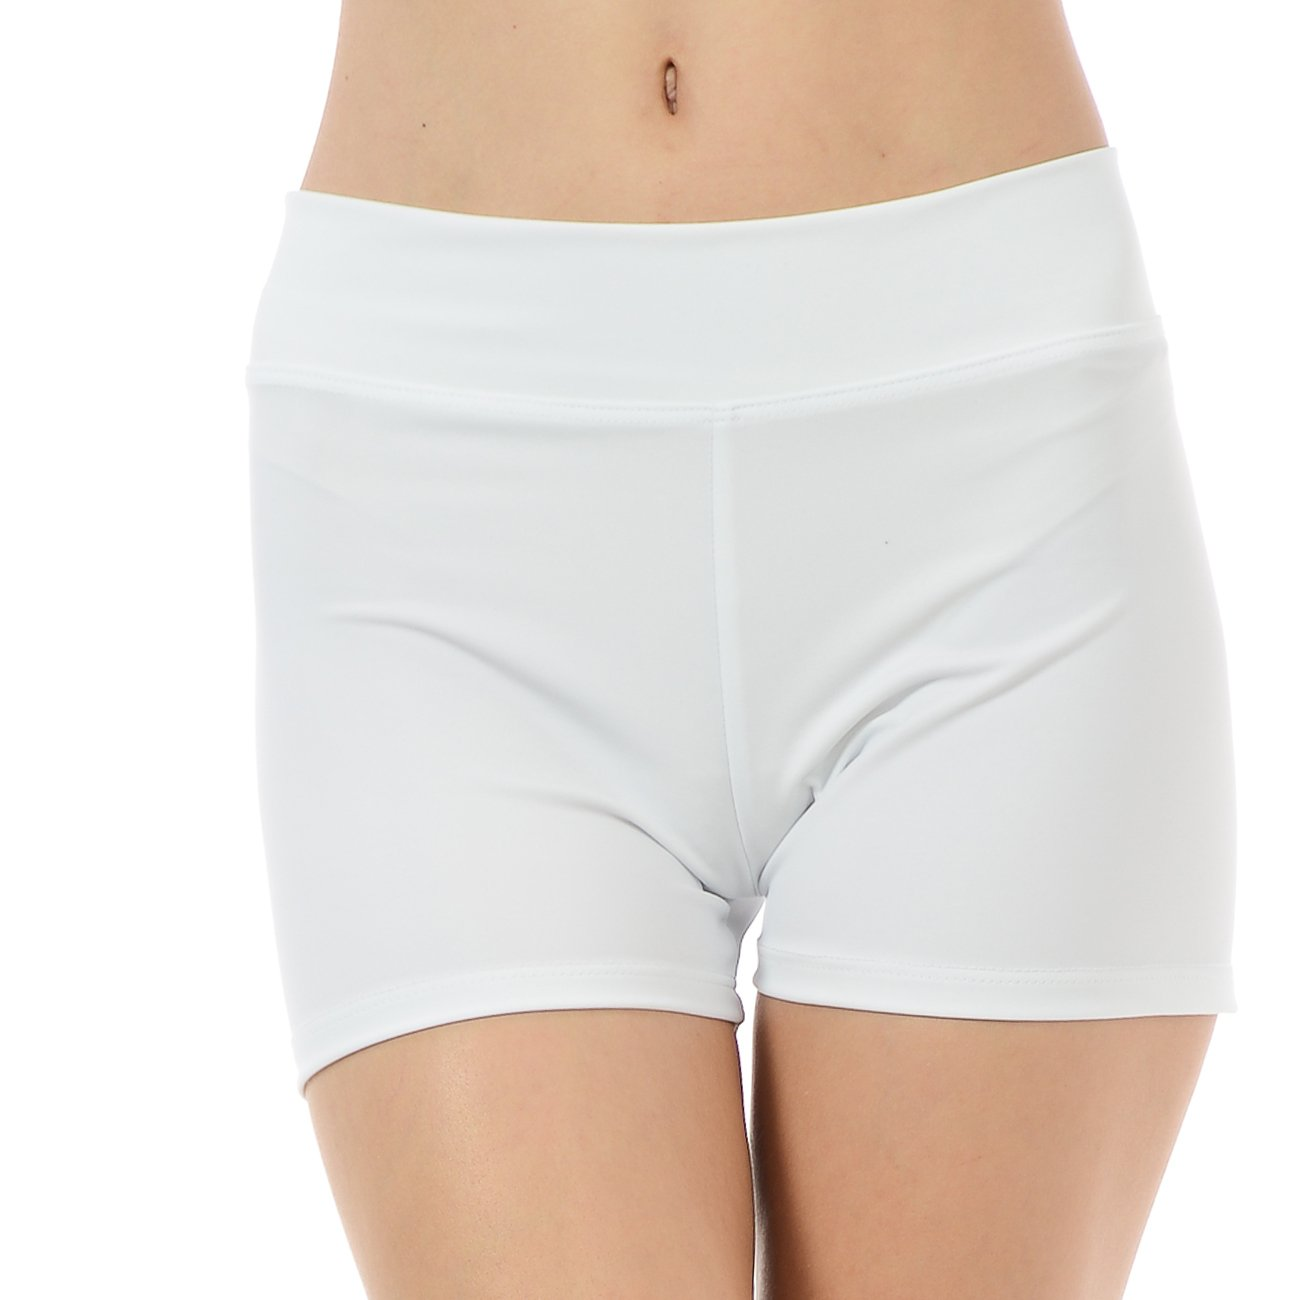 ANZA Girls Activewear Dance Booty Shorts Gym Workout Yoga Shorts-White,X-Small(2/4) by Anza Collection